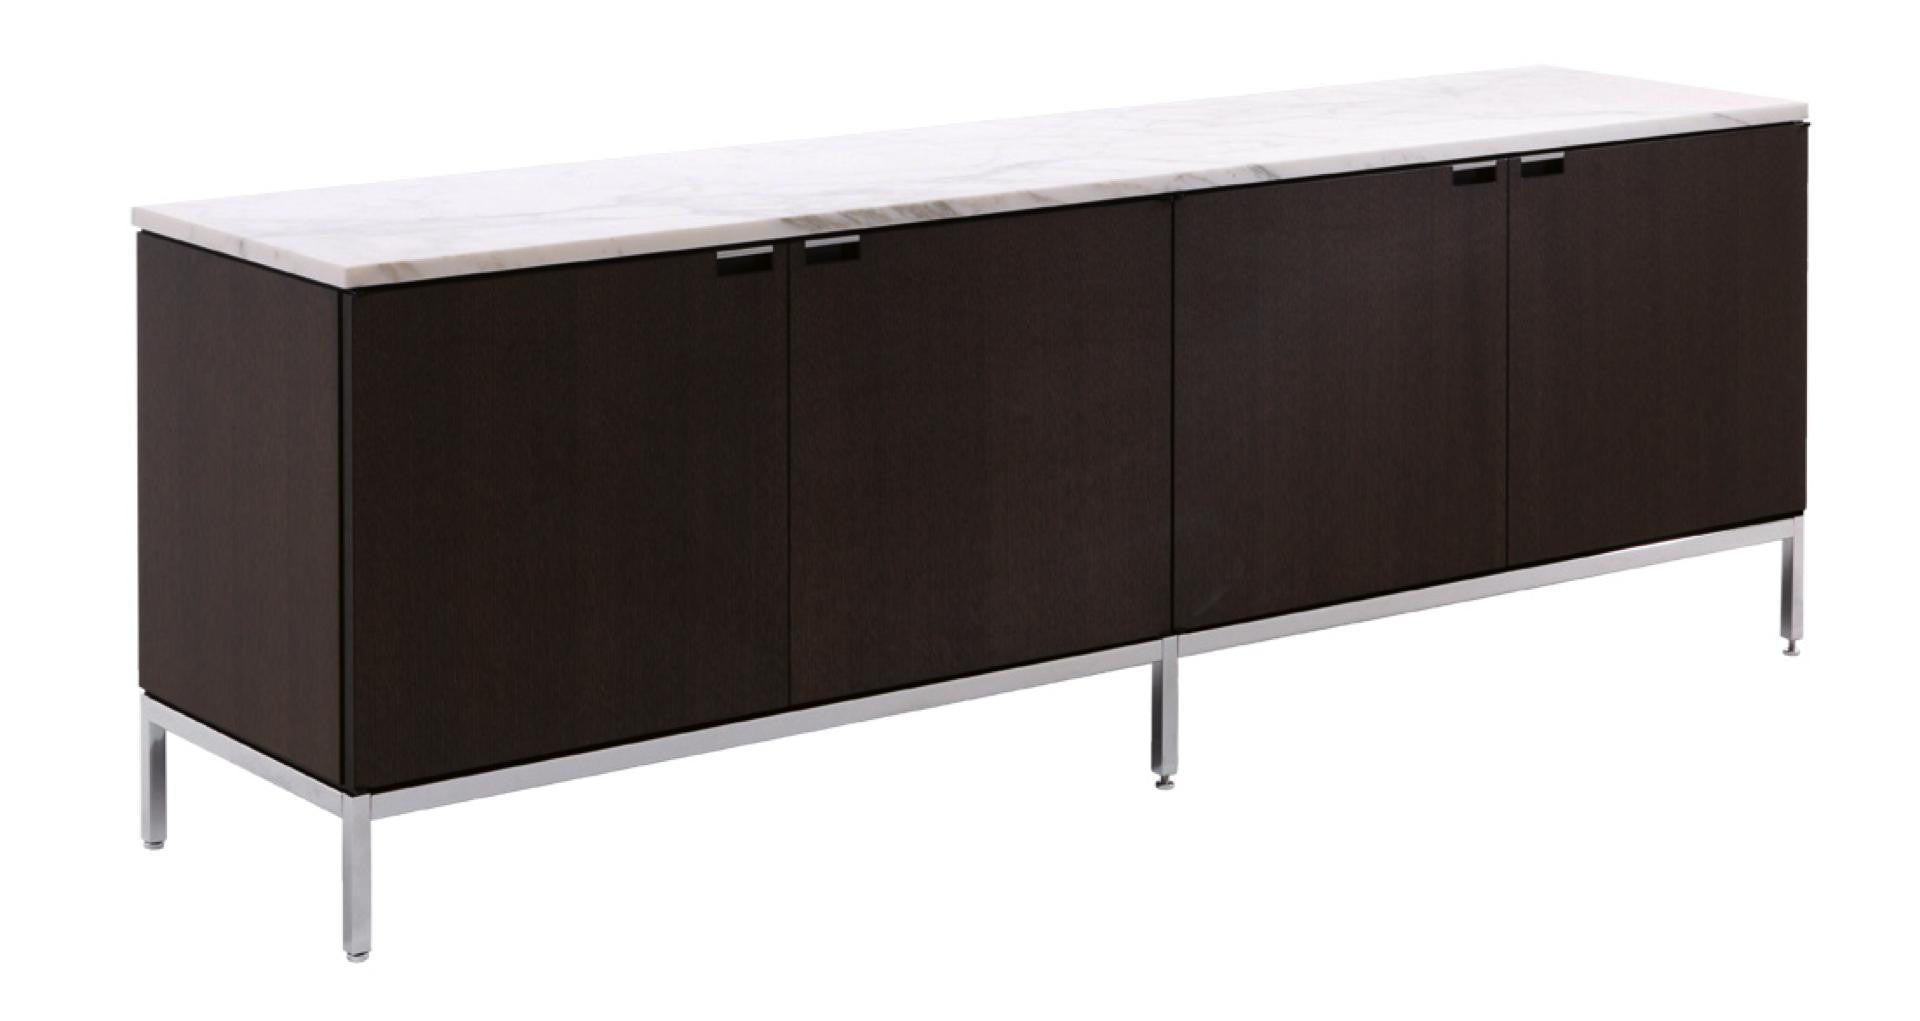 Superieur Florence Knoll Low Cabinet, Large